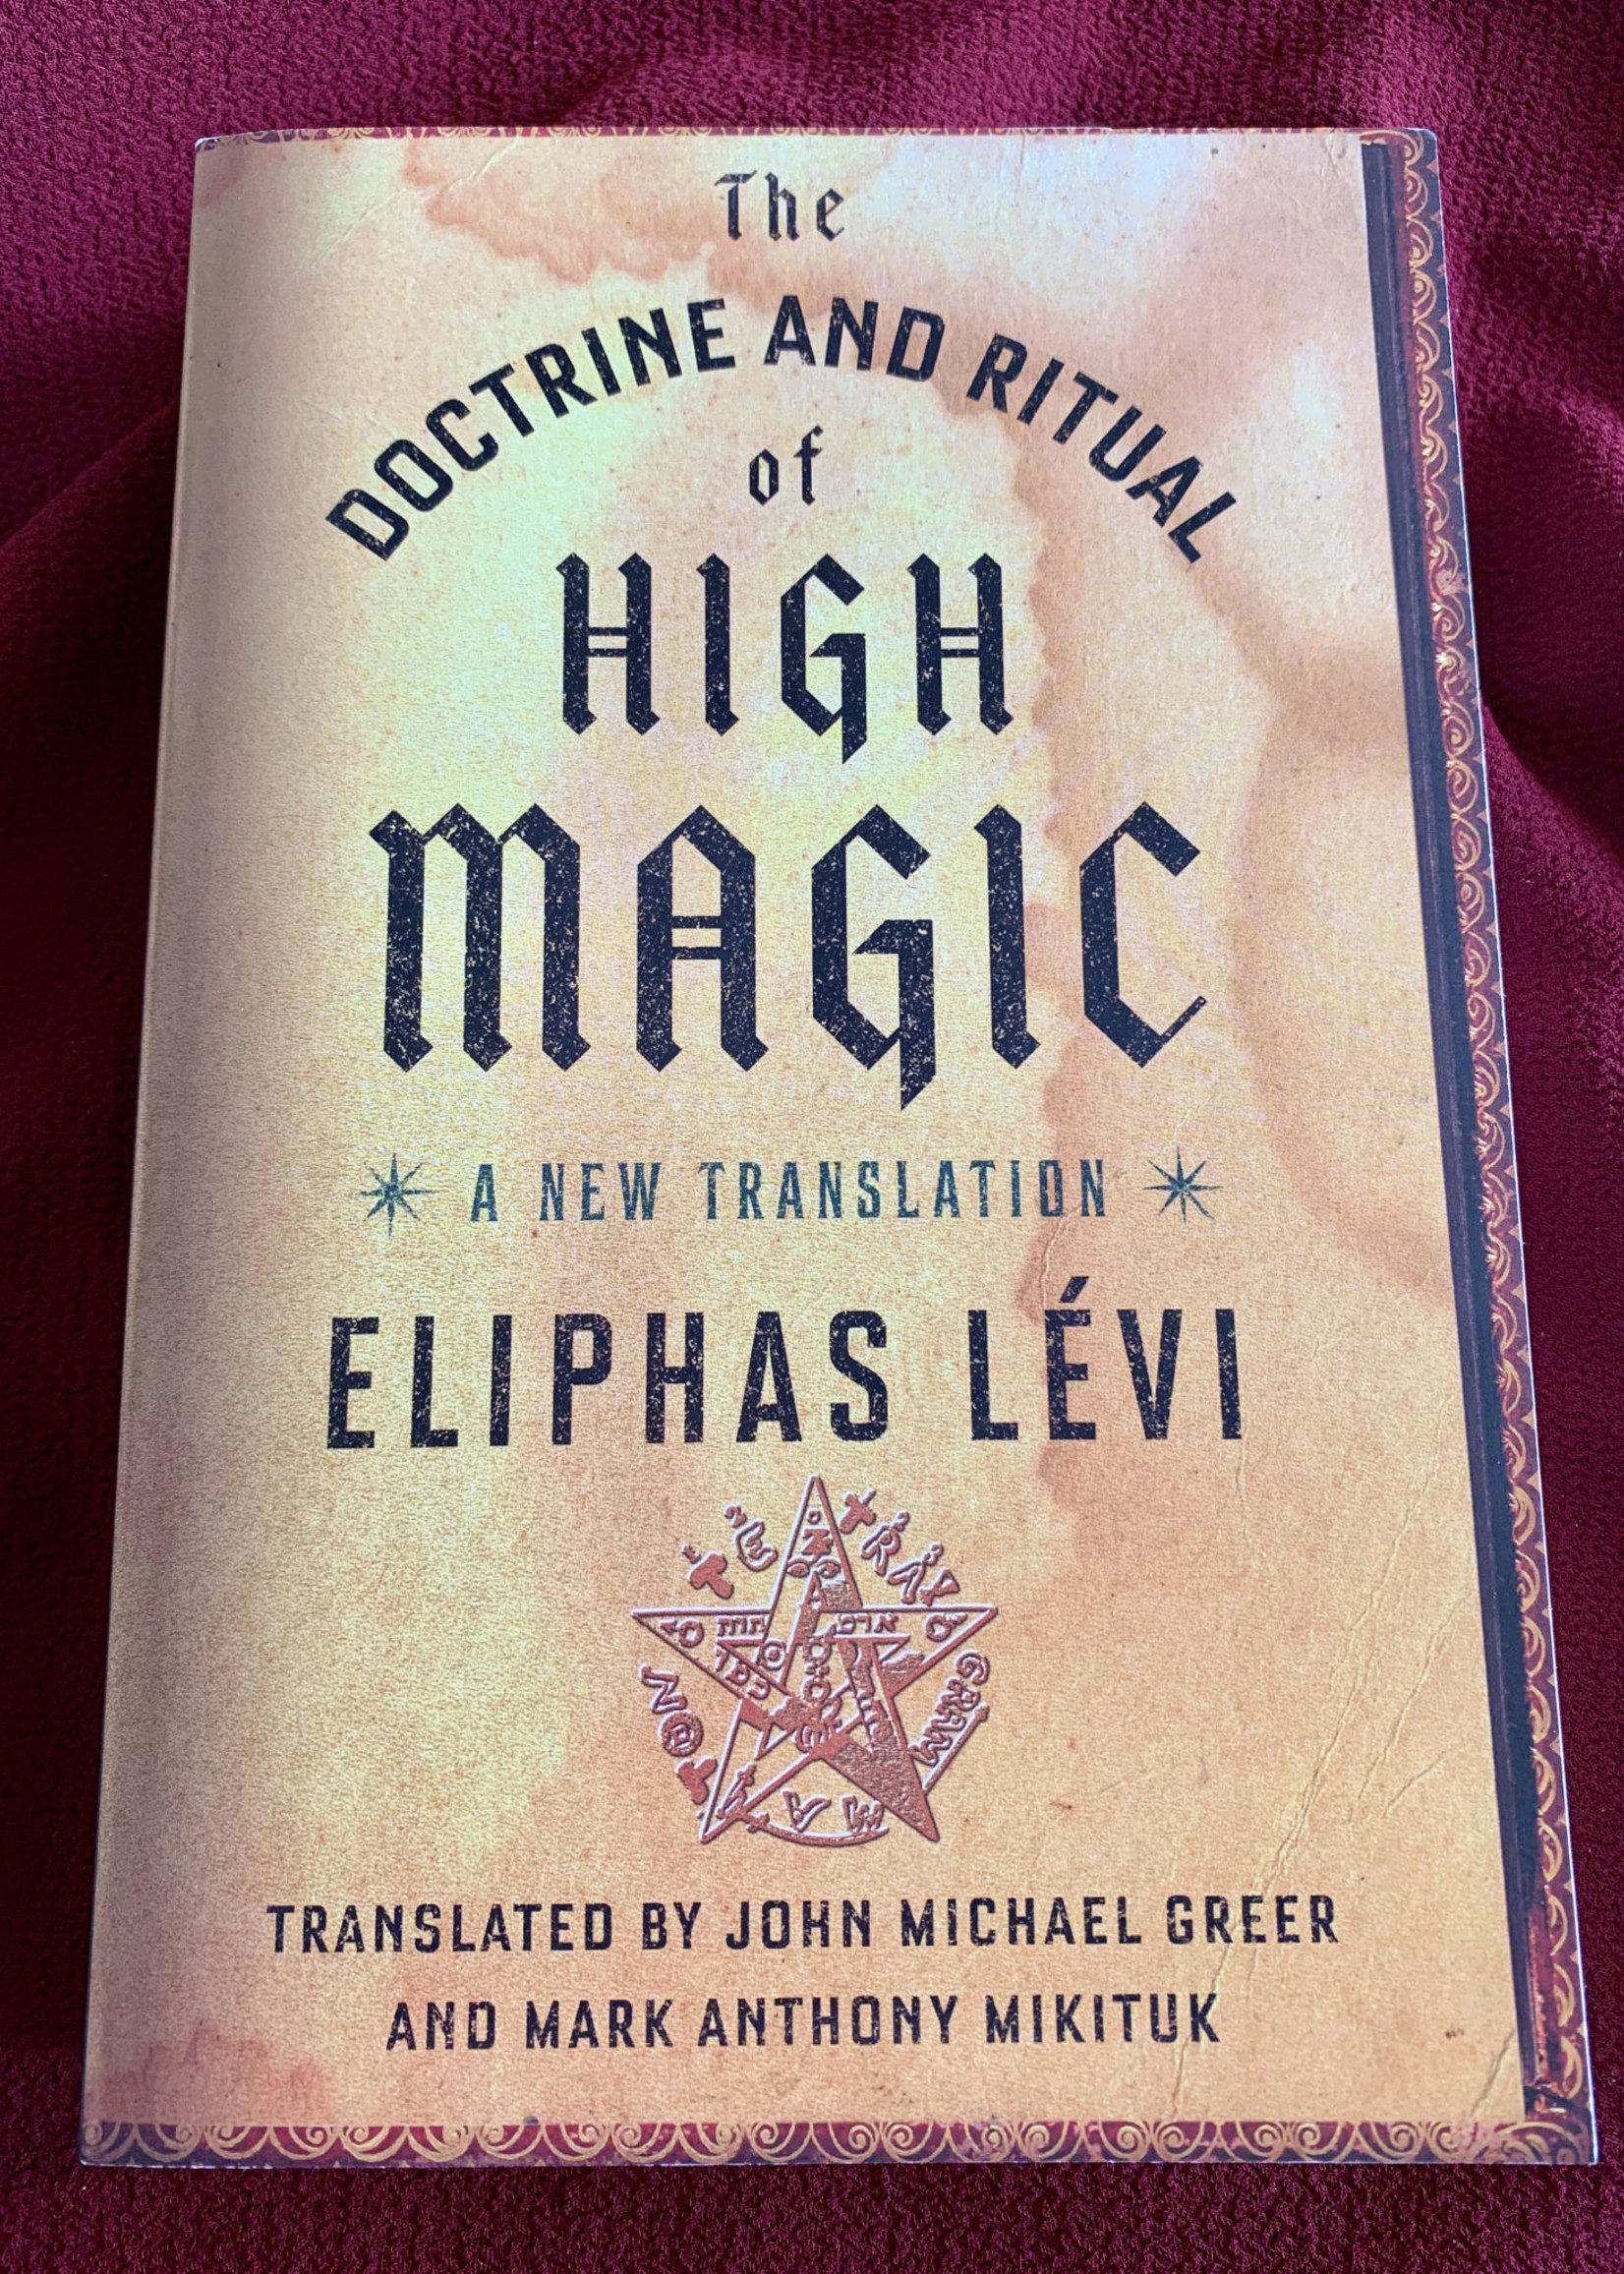 The Doctrine and Ritual of High Magic A NEW TRANSLATION By ELIPHAS LÉVI Translated by John Michael Greer and Mark Anthony Mikituk